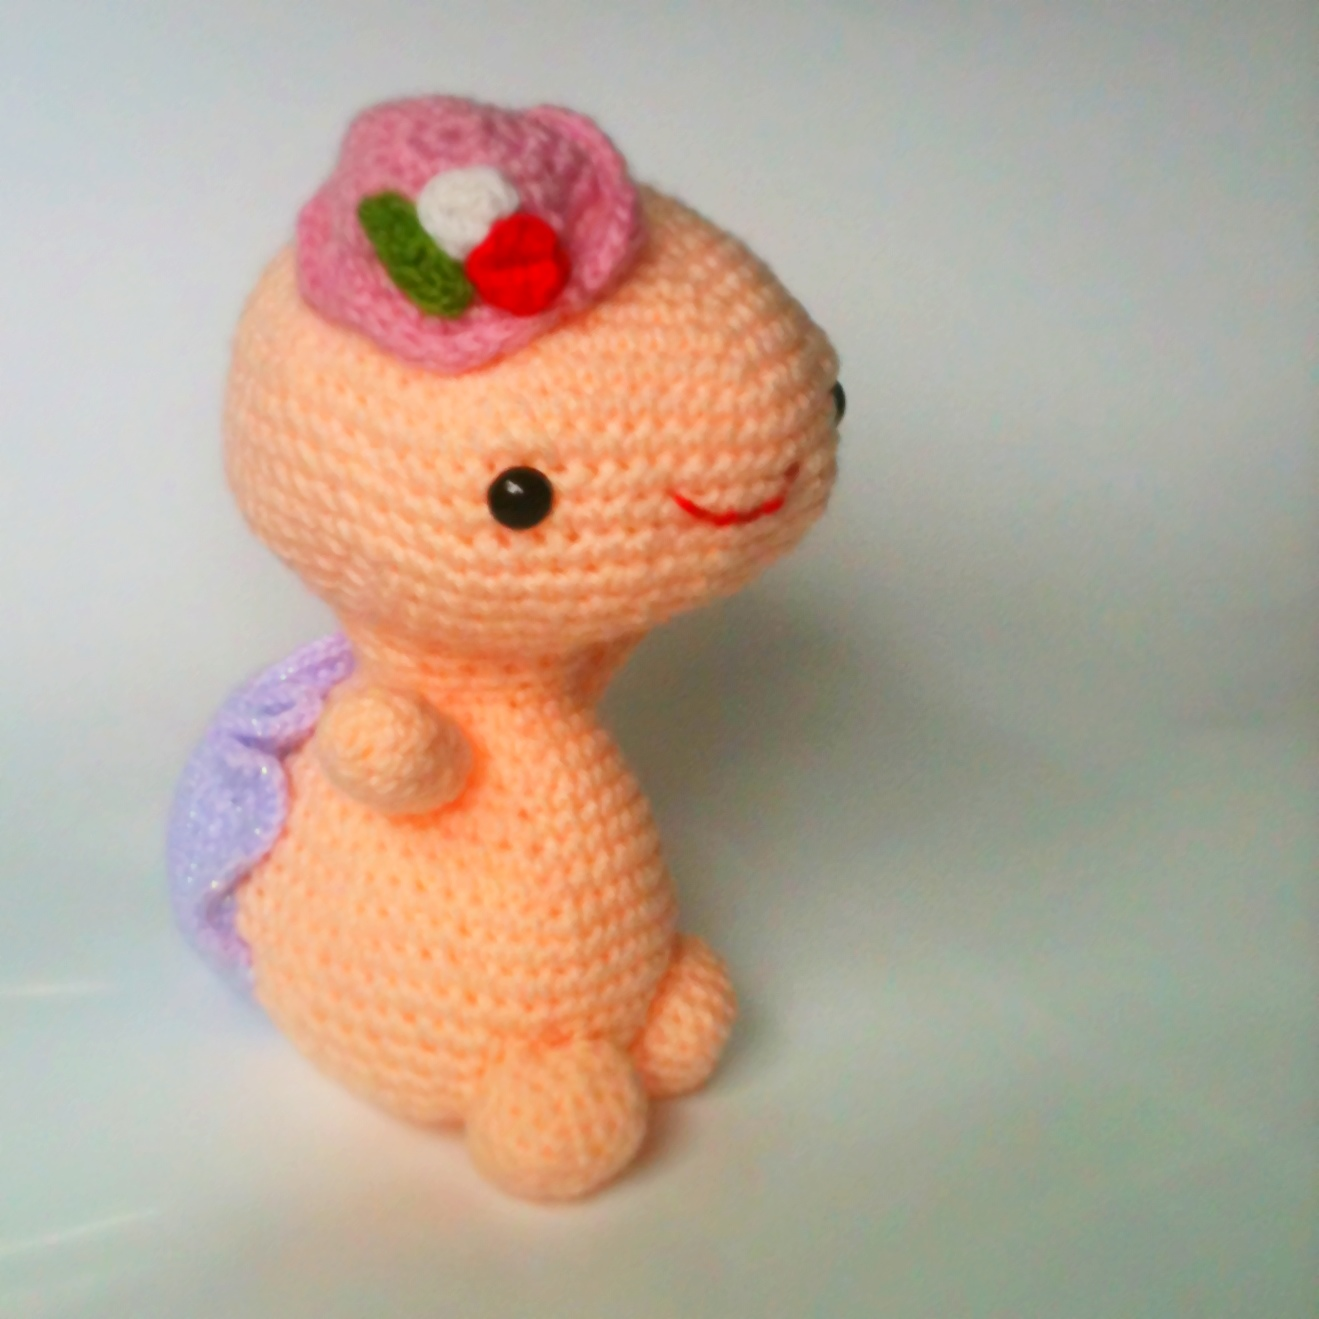 Crochet Pattern Amigurumi Turtle : on top of a lily pad: Crazy Cute Amigurumi Turtle